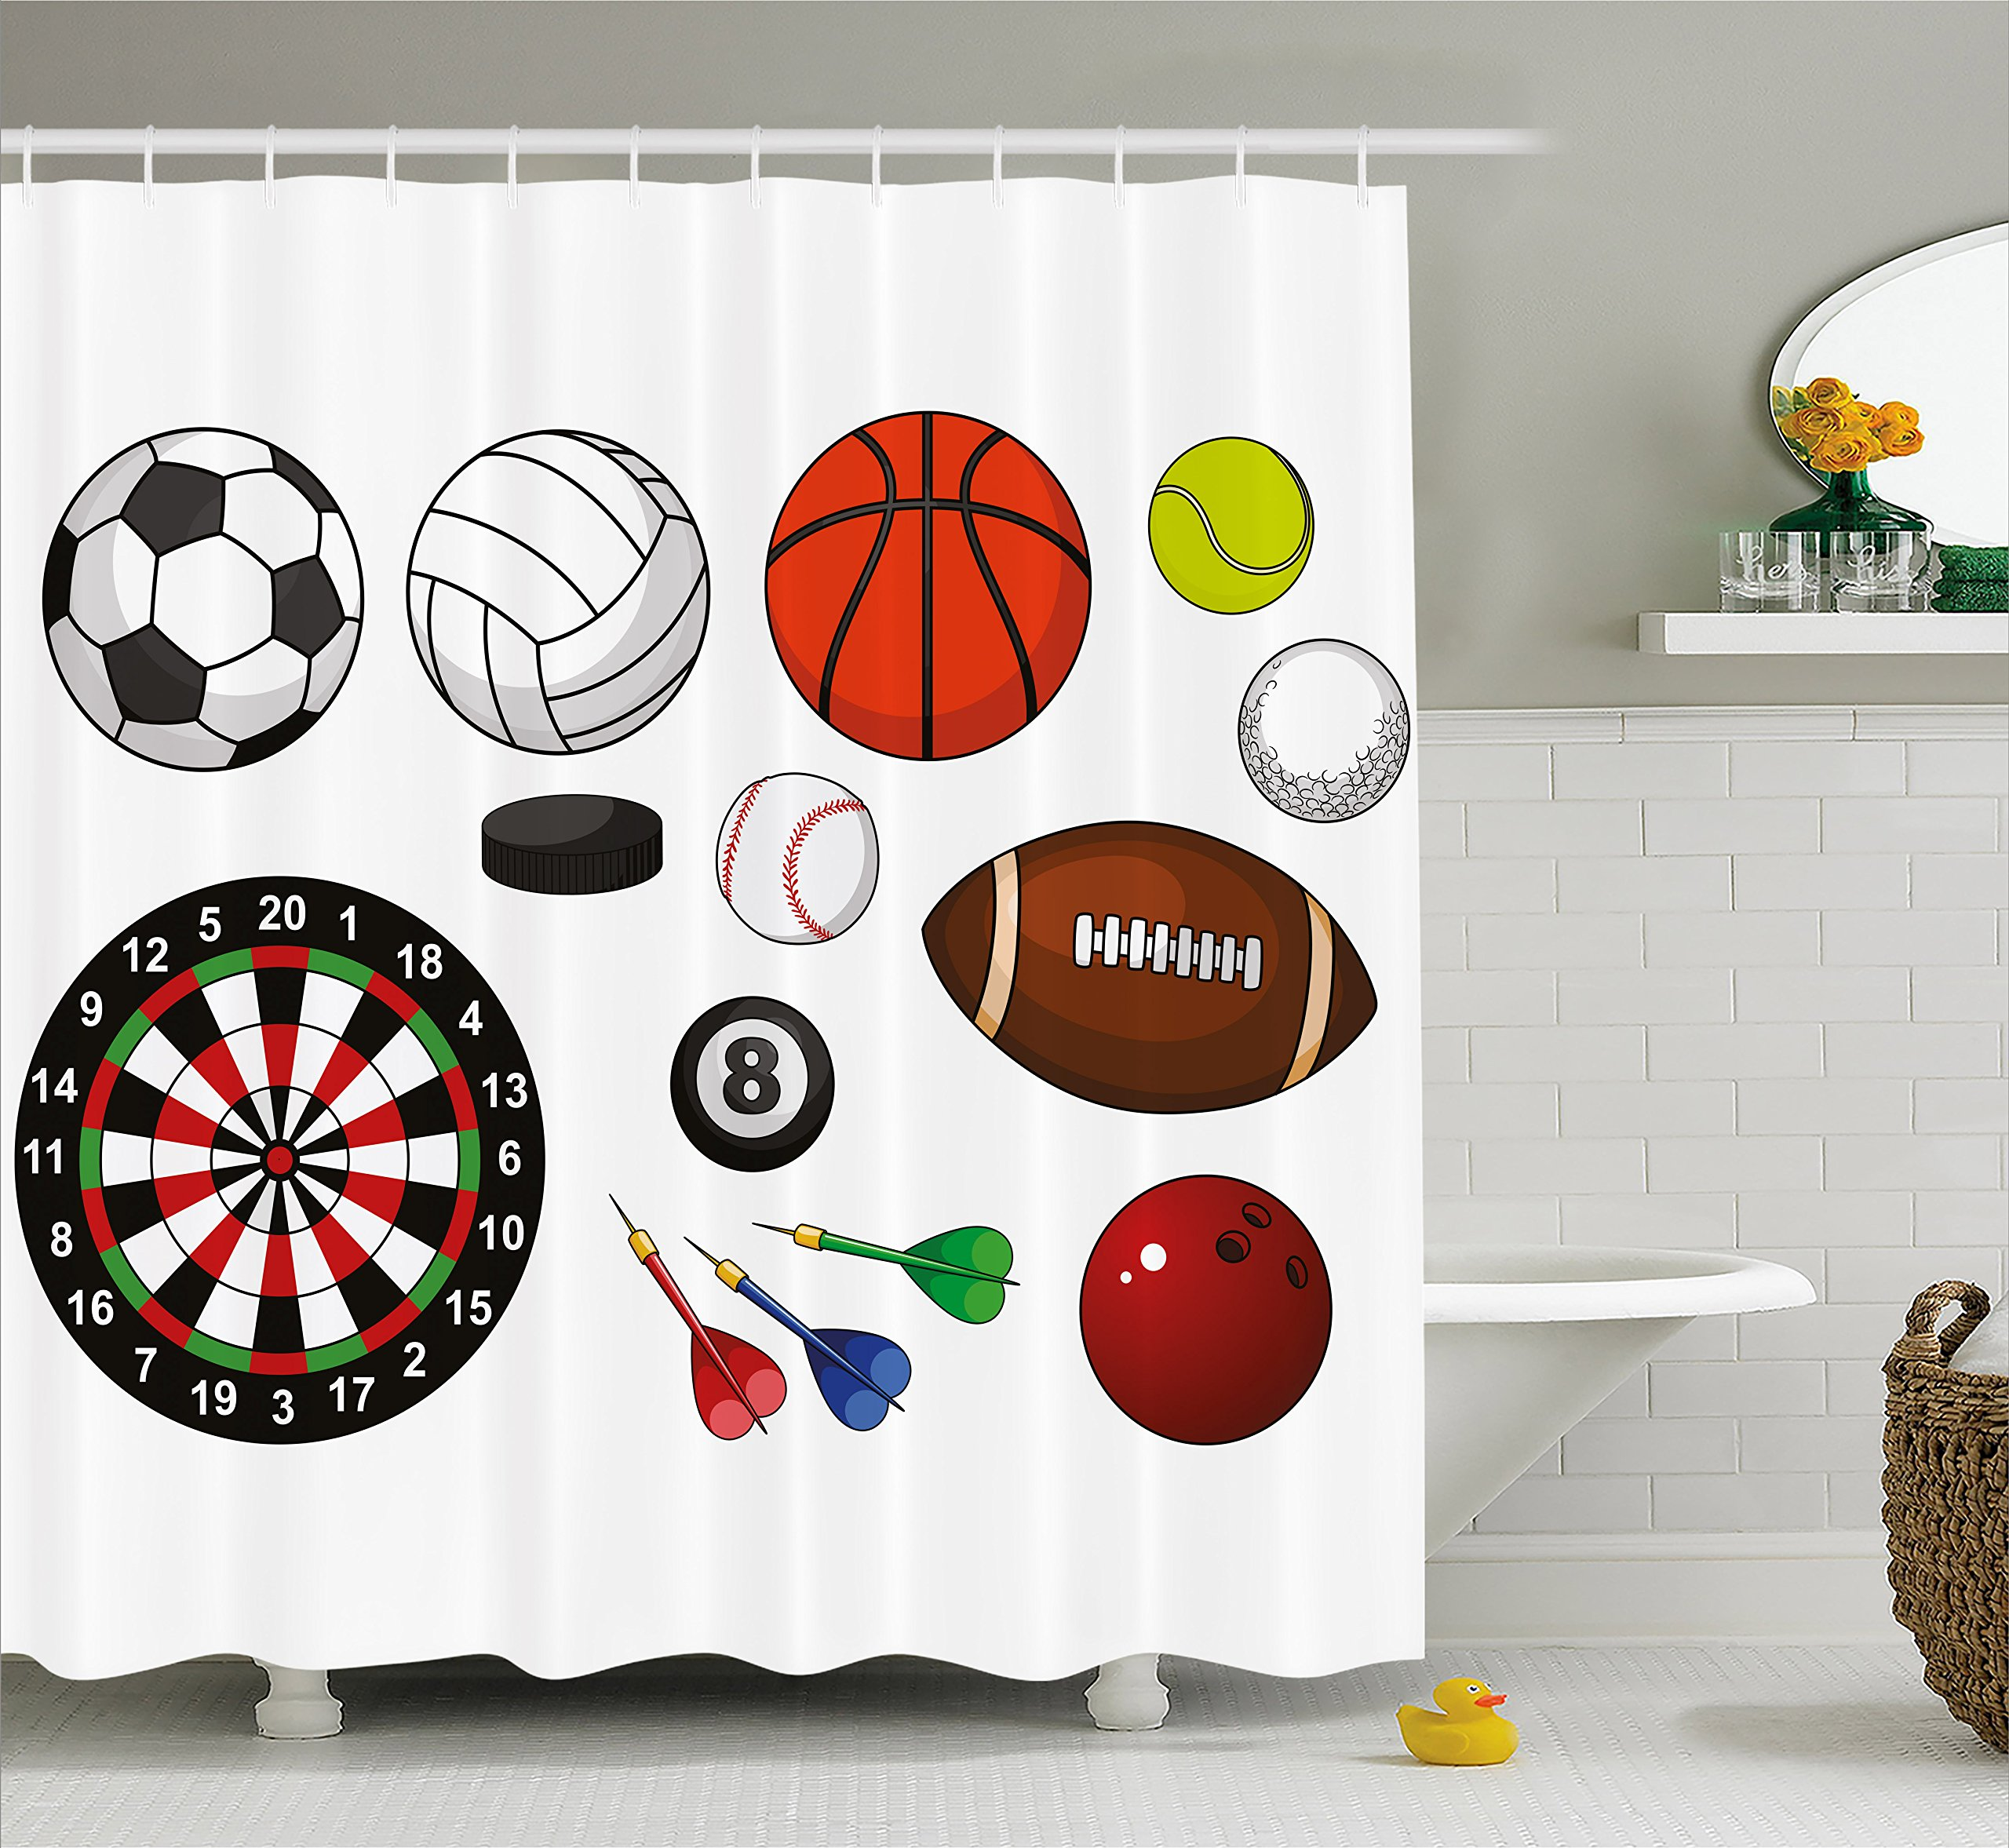 Lunarable Boy's Room Shower Curtain, Variety of Sports Icons Different Games Balls Dartboard Hockey Puck and Pins, Fabric Bathroom Decor Set with Hooks, 84 inches Extra Long, Multicolor